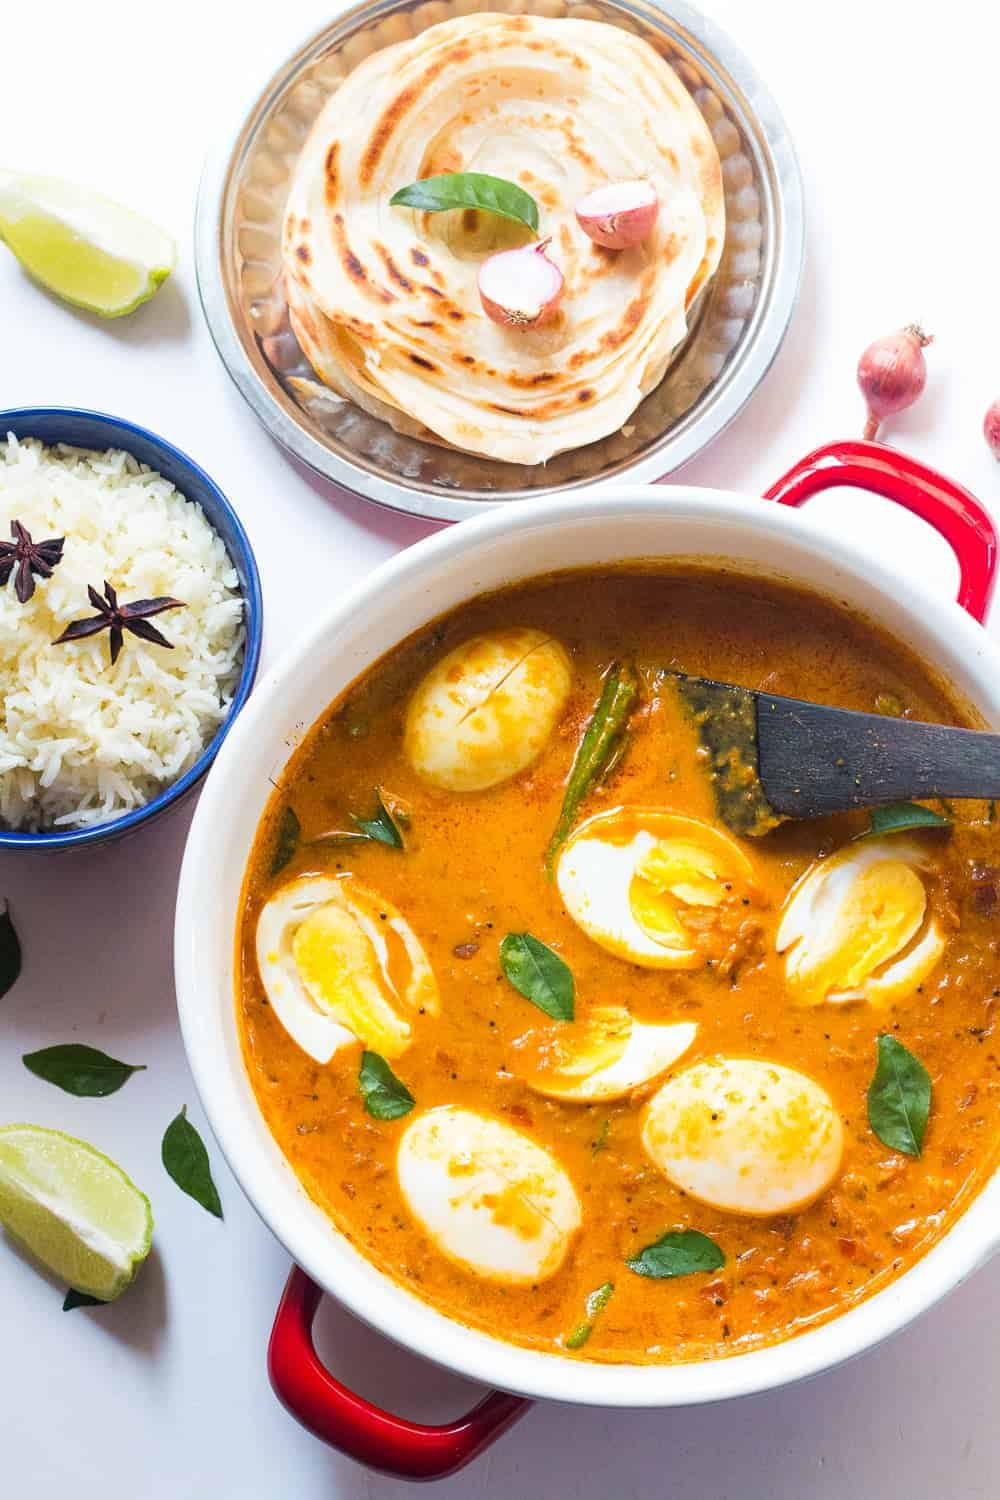 South indian style egg curry recipe kerala style south indian style egg curry in a pot with steamed rice and malabar parathas forumfinder Choice Image